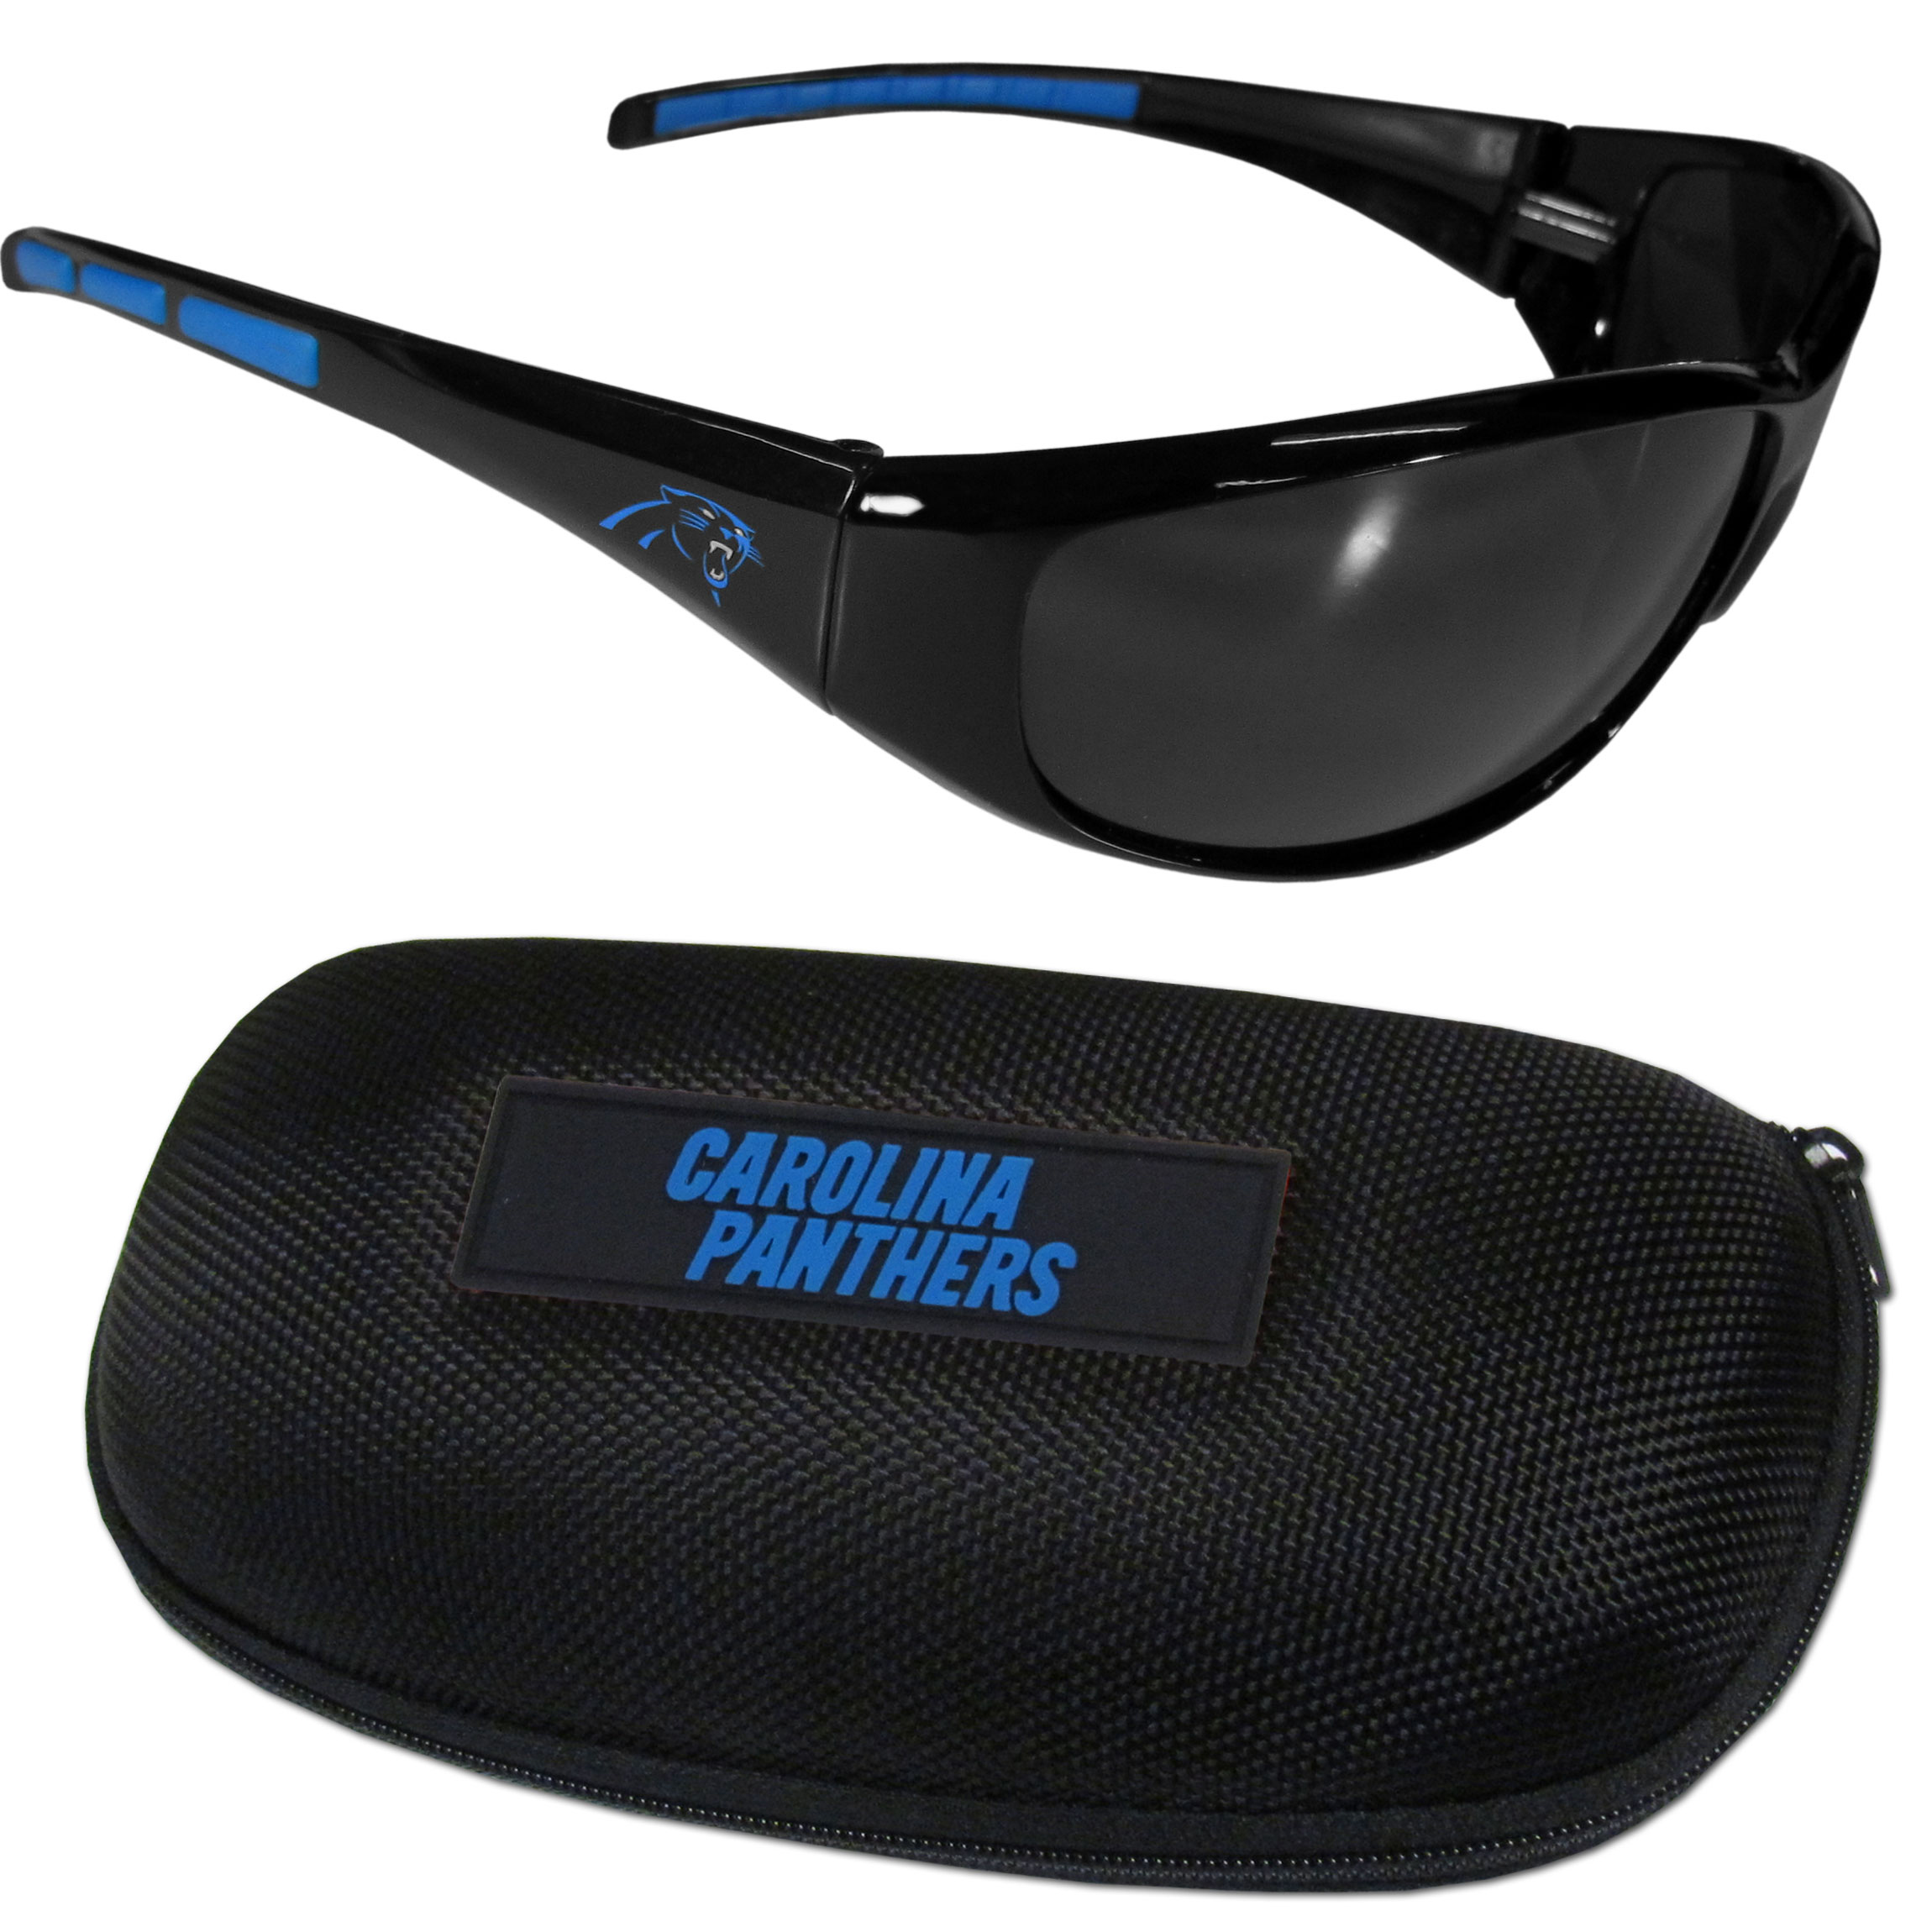 Carolina Panthers Wrap Sunglass and Case Set - This great set includes a high quality pair of  Carolina Panthers wrap sunglasses and hard carrying case.